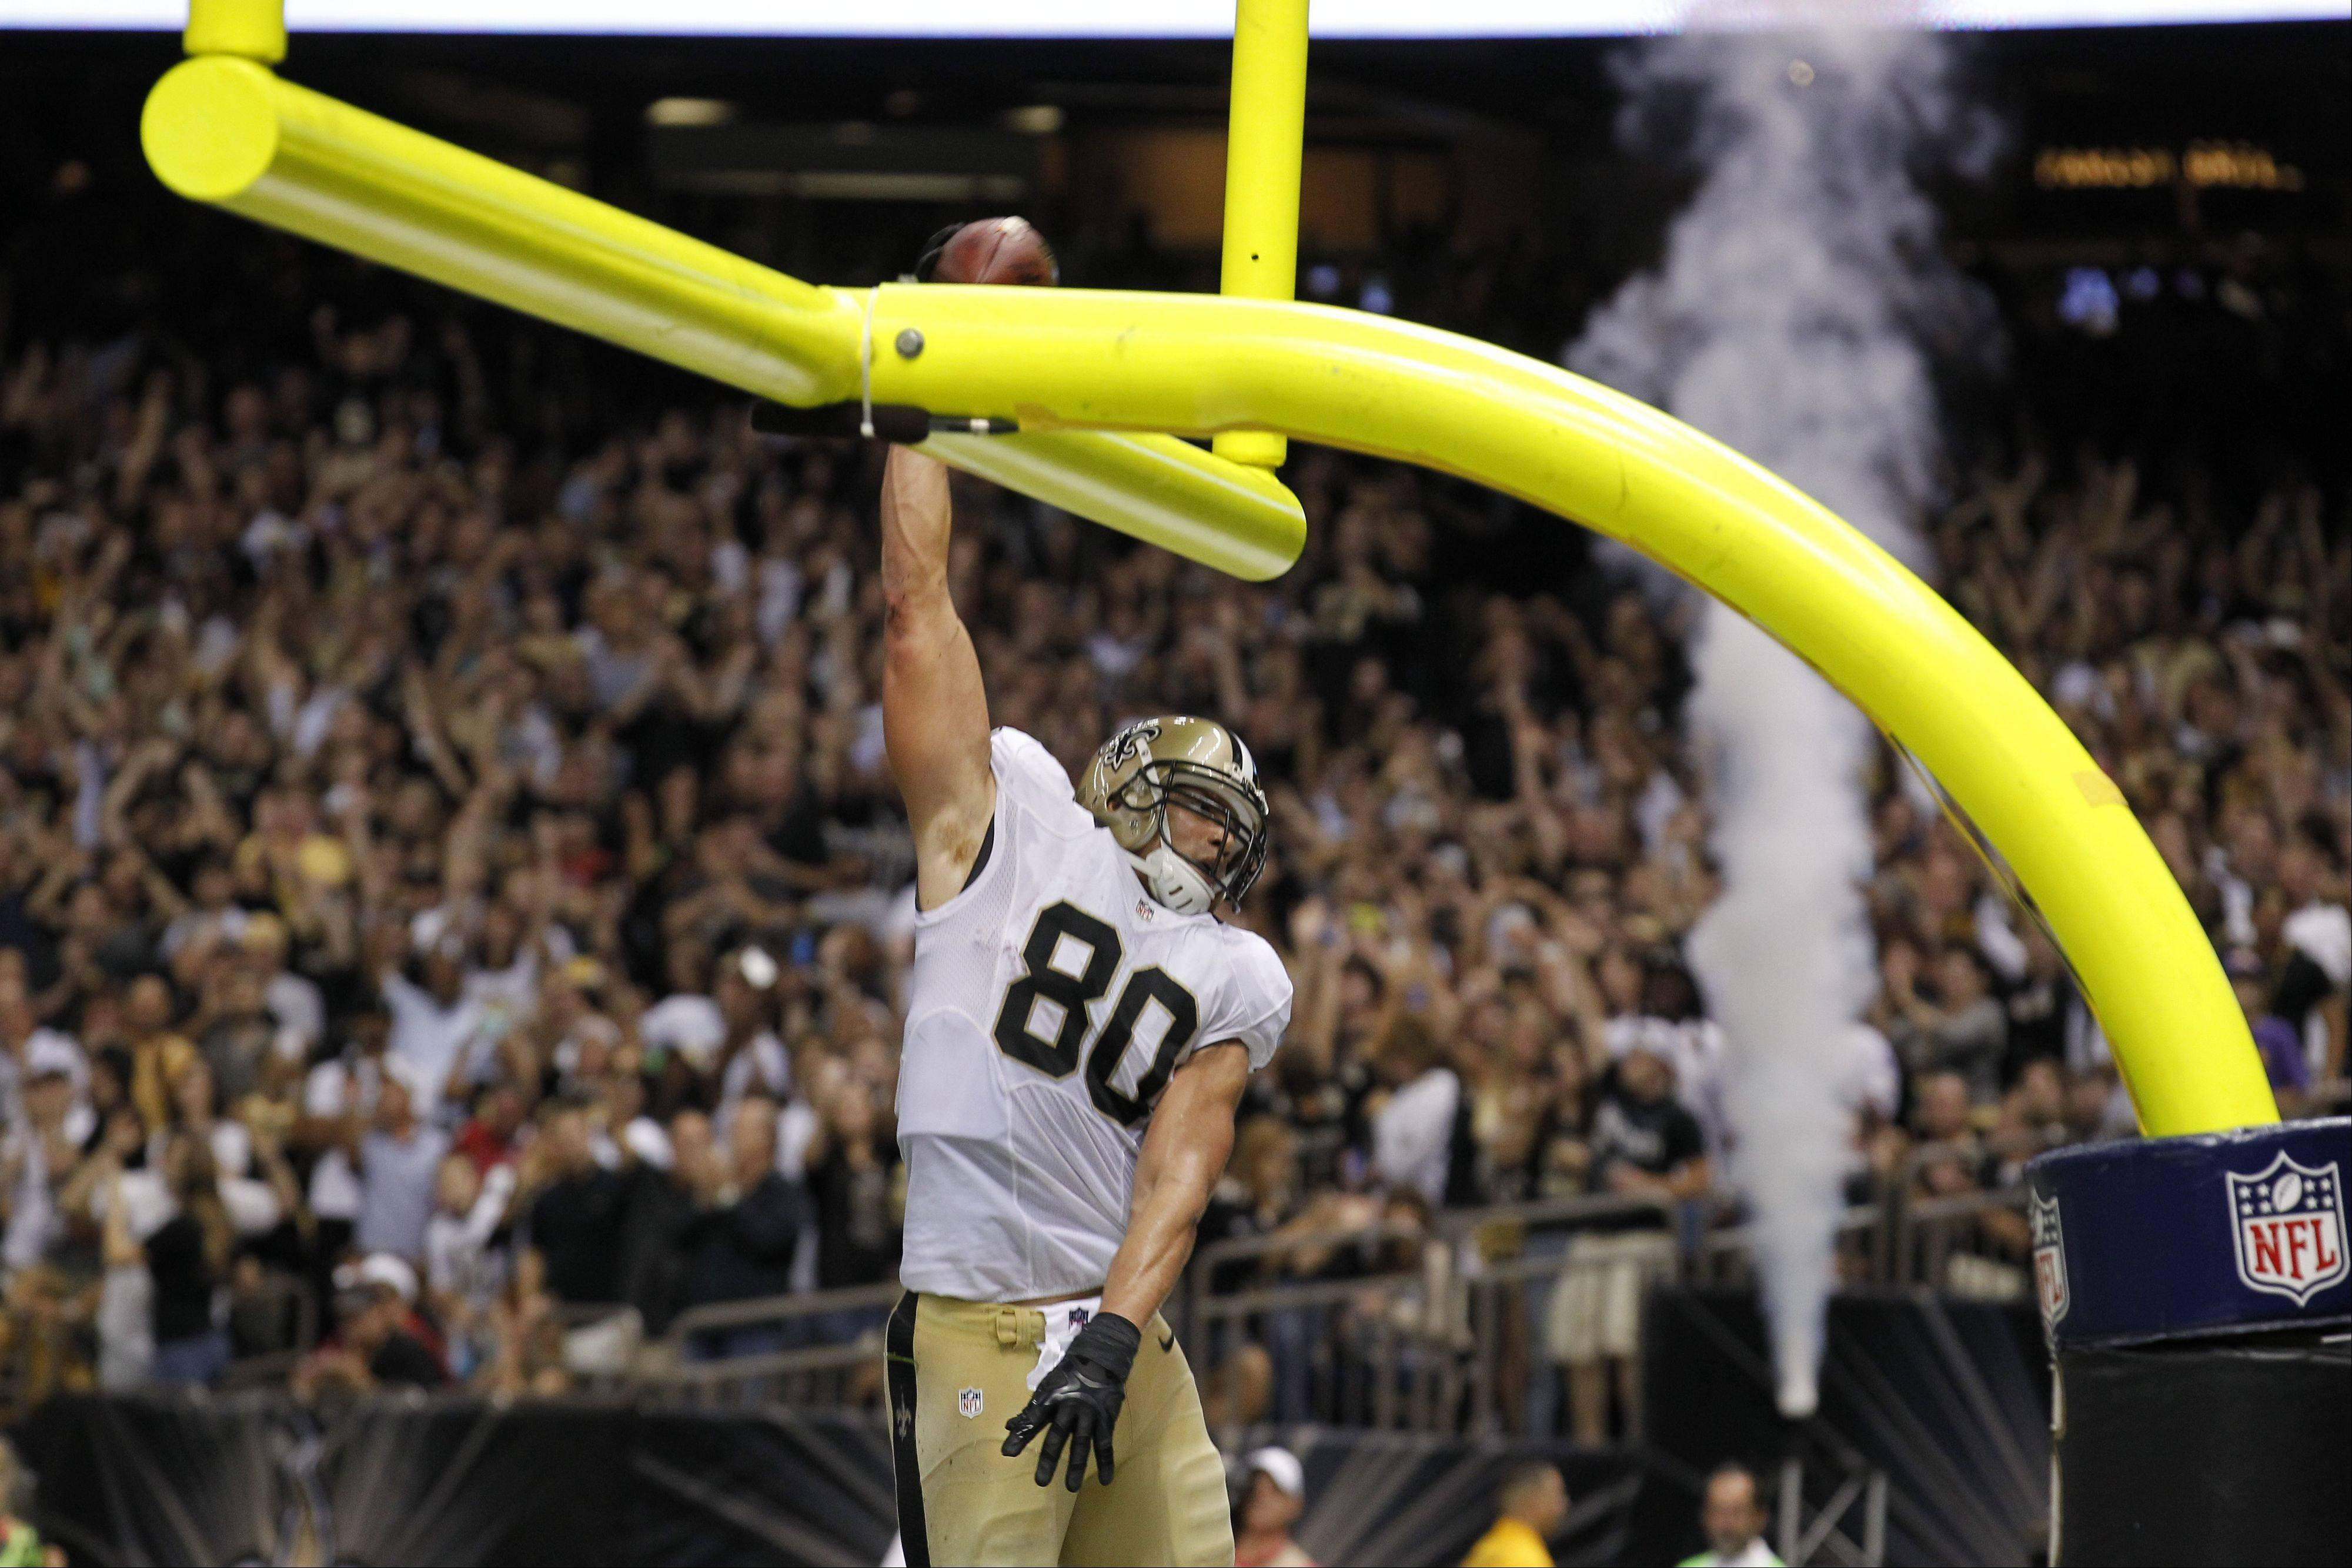 New Orleans Saints tight end Jimmy Graham (80) slam dunks over the goalpost after scoring on a touchdown reception in the second half of an NFL football game against the Arizona Cardinals in New Orleans, Sunday, Sept. 22, 2013.